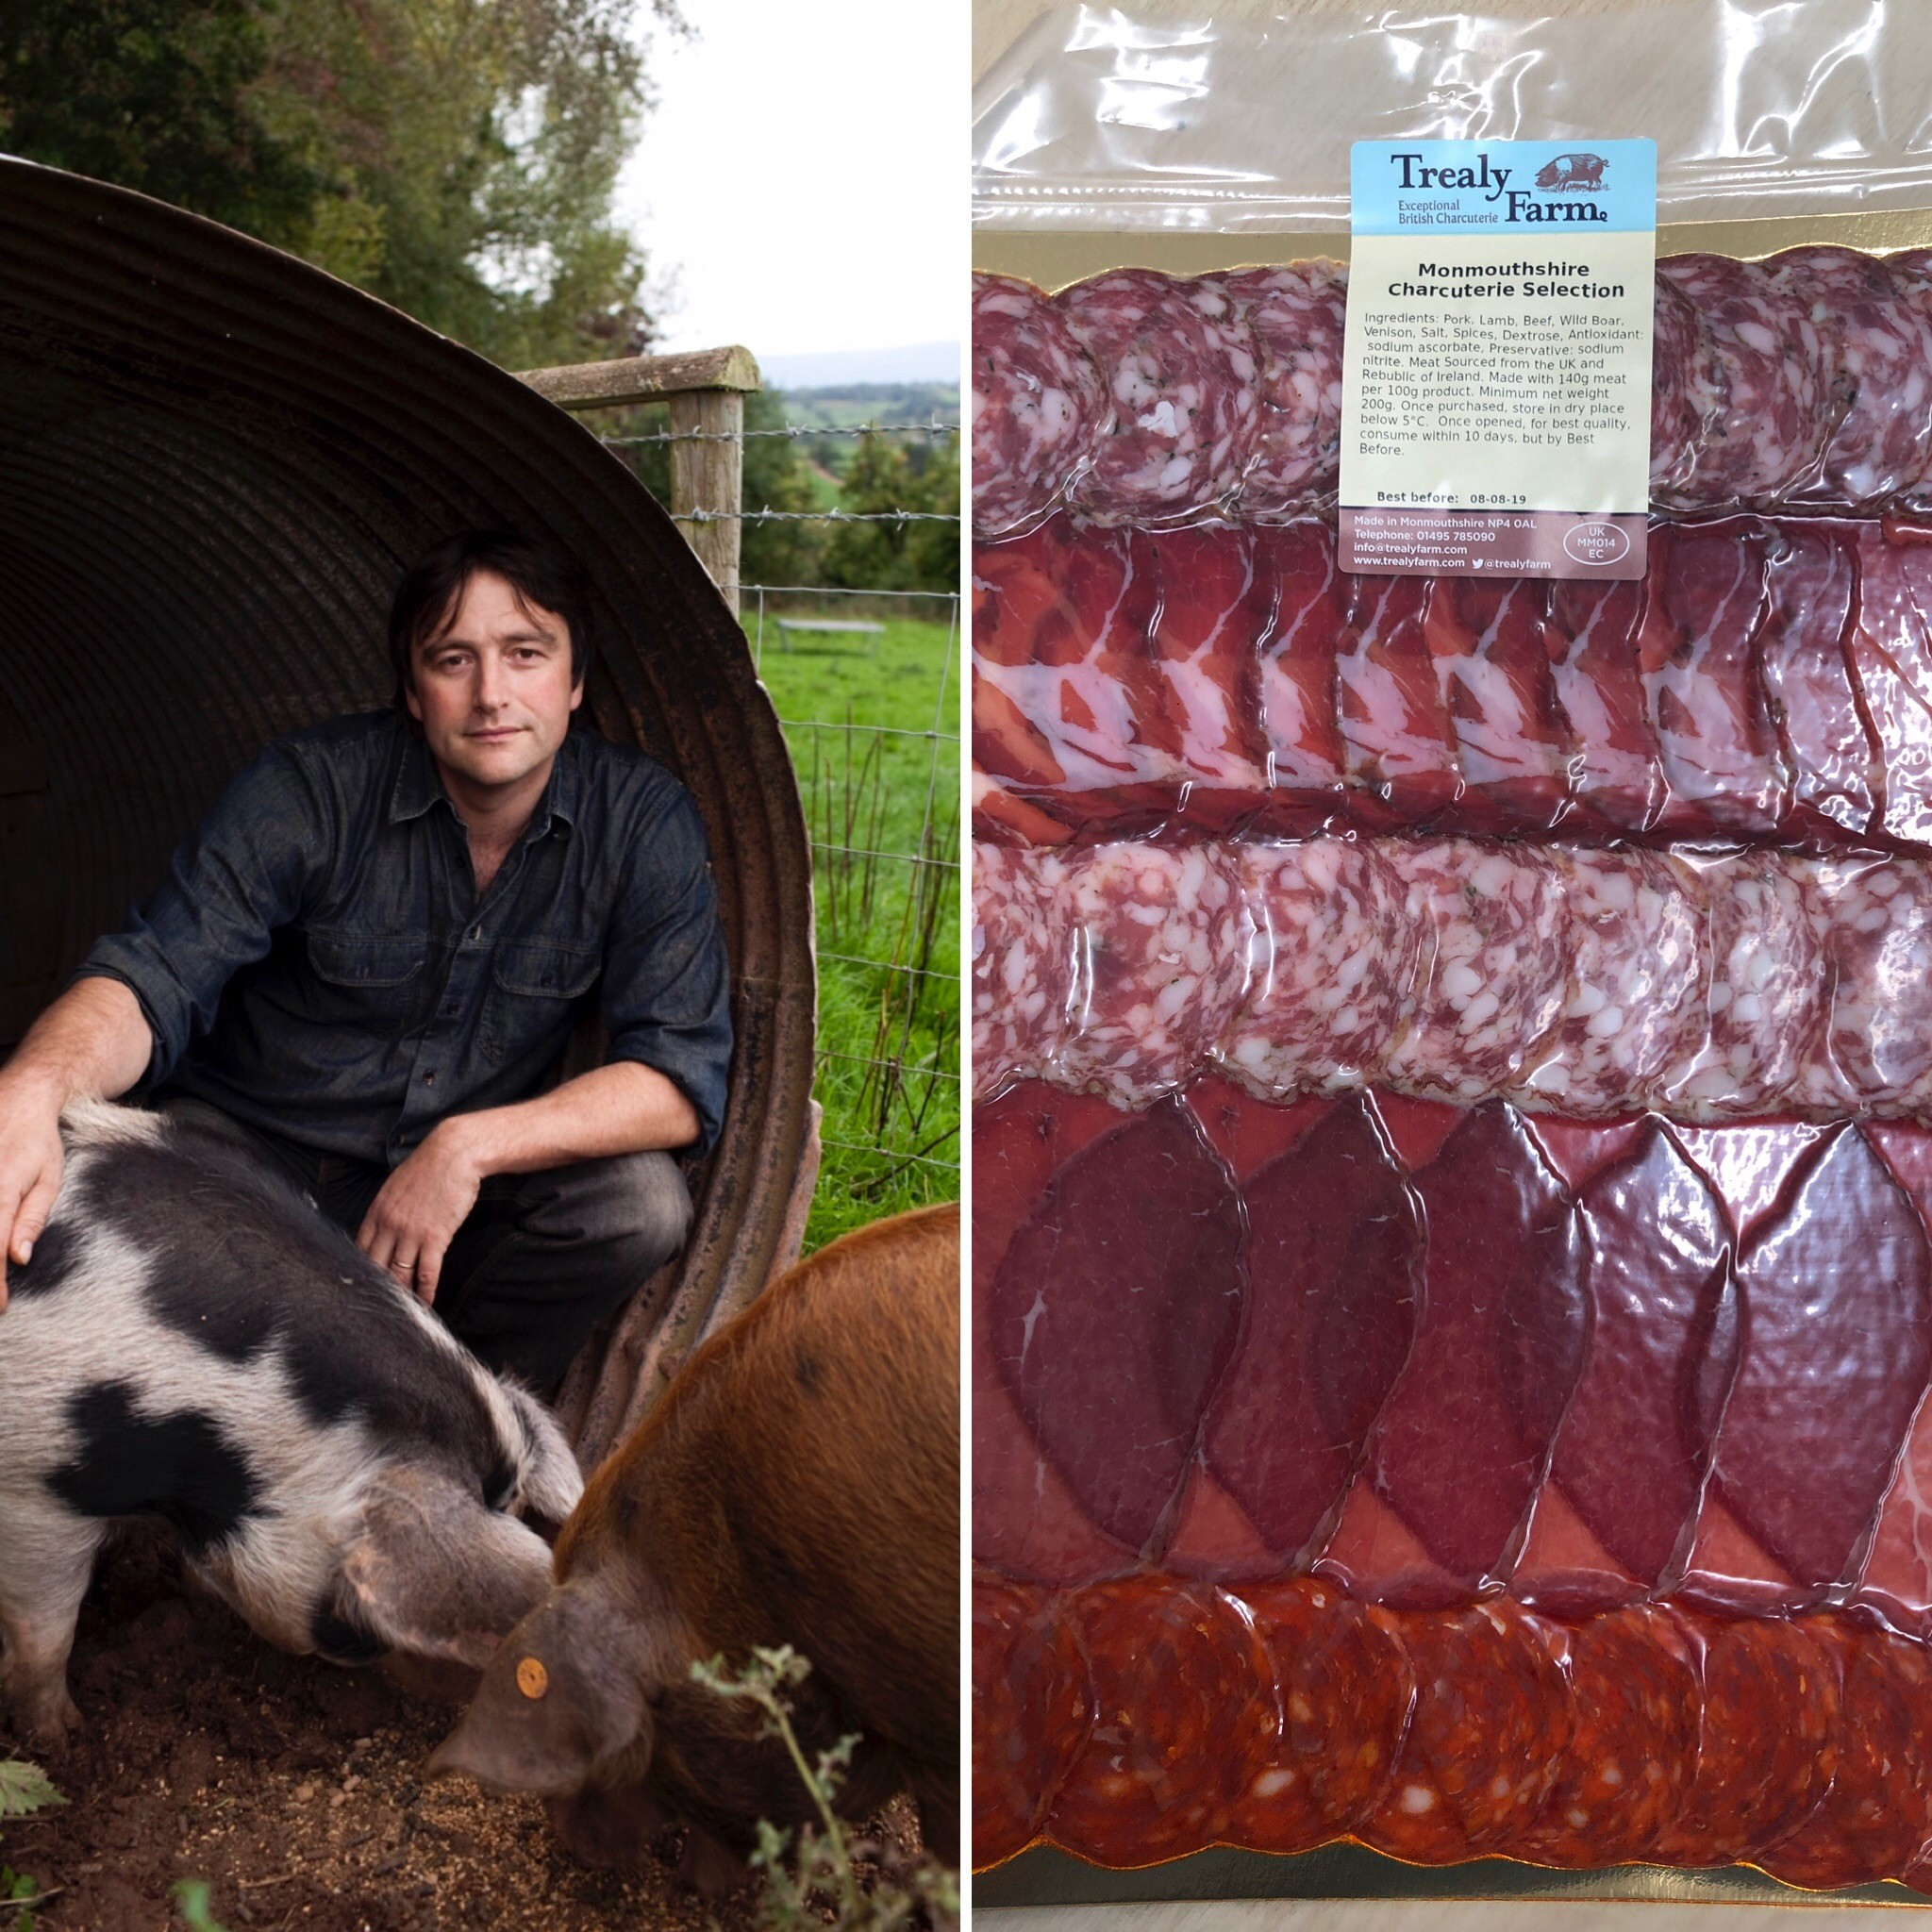 9:10pm: Trealy Farm handmade British charcuterie